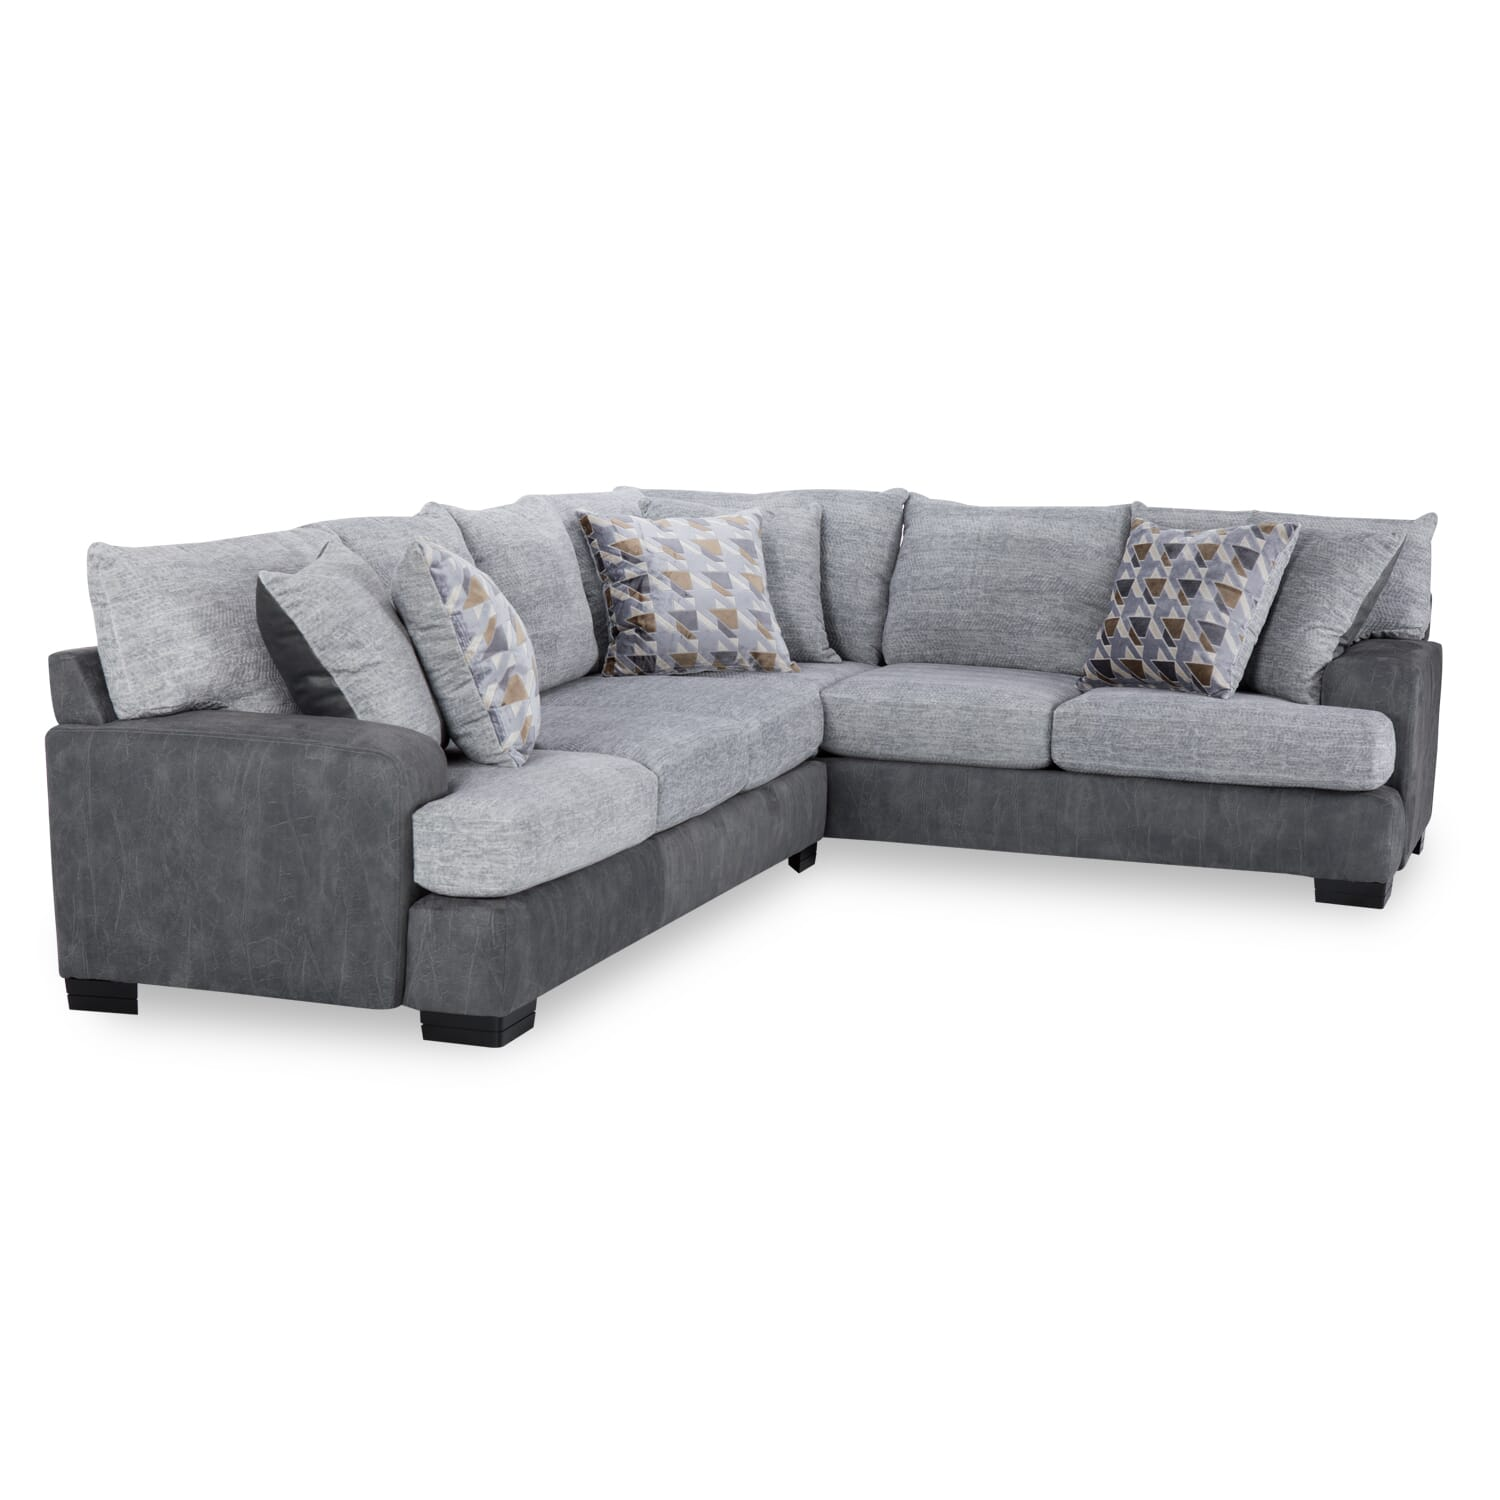 Luka 2-Pc. Sectional   New Arrivals, Sale, Sectionals   WG ...